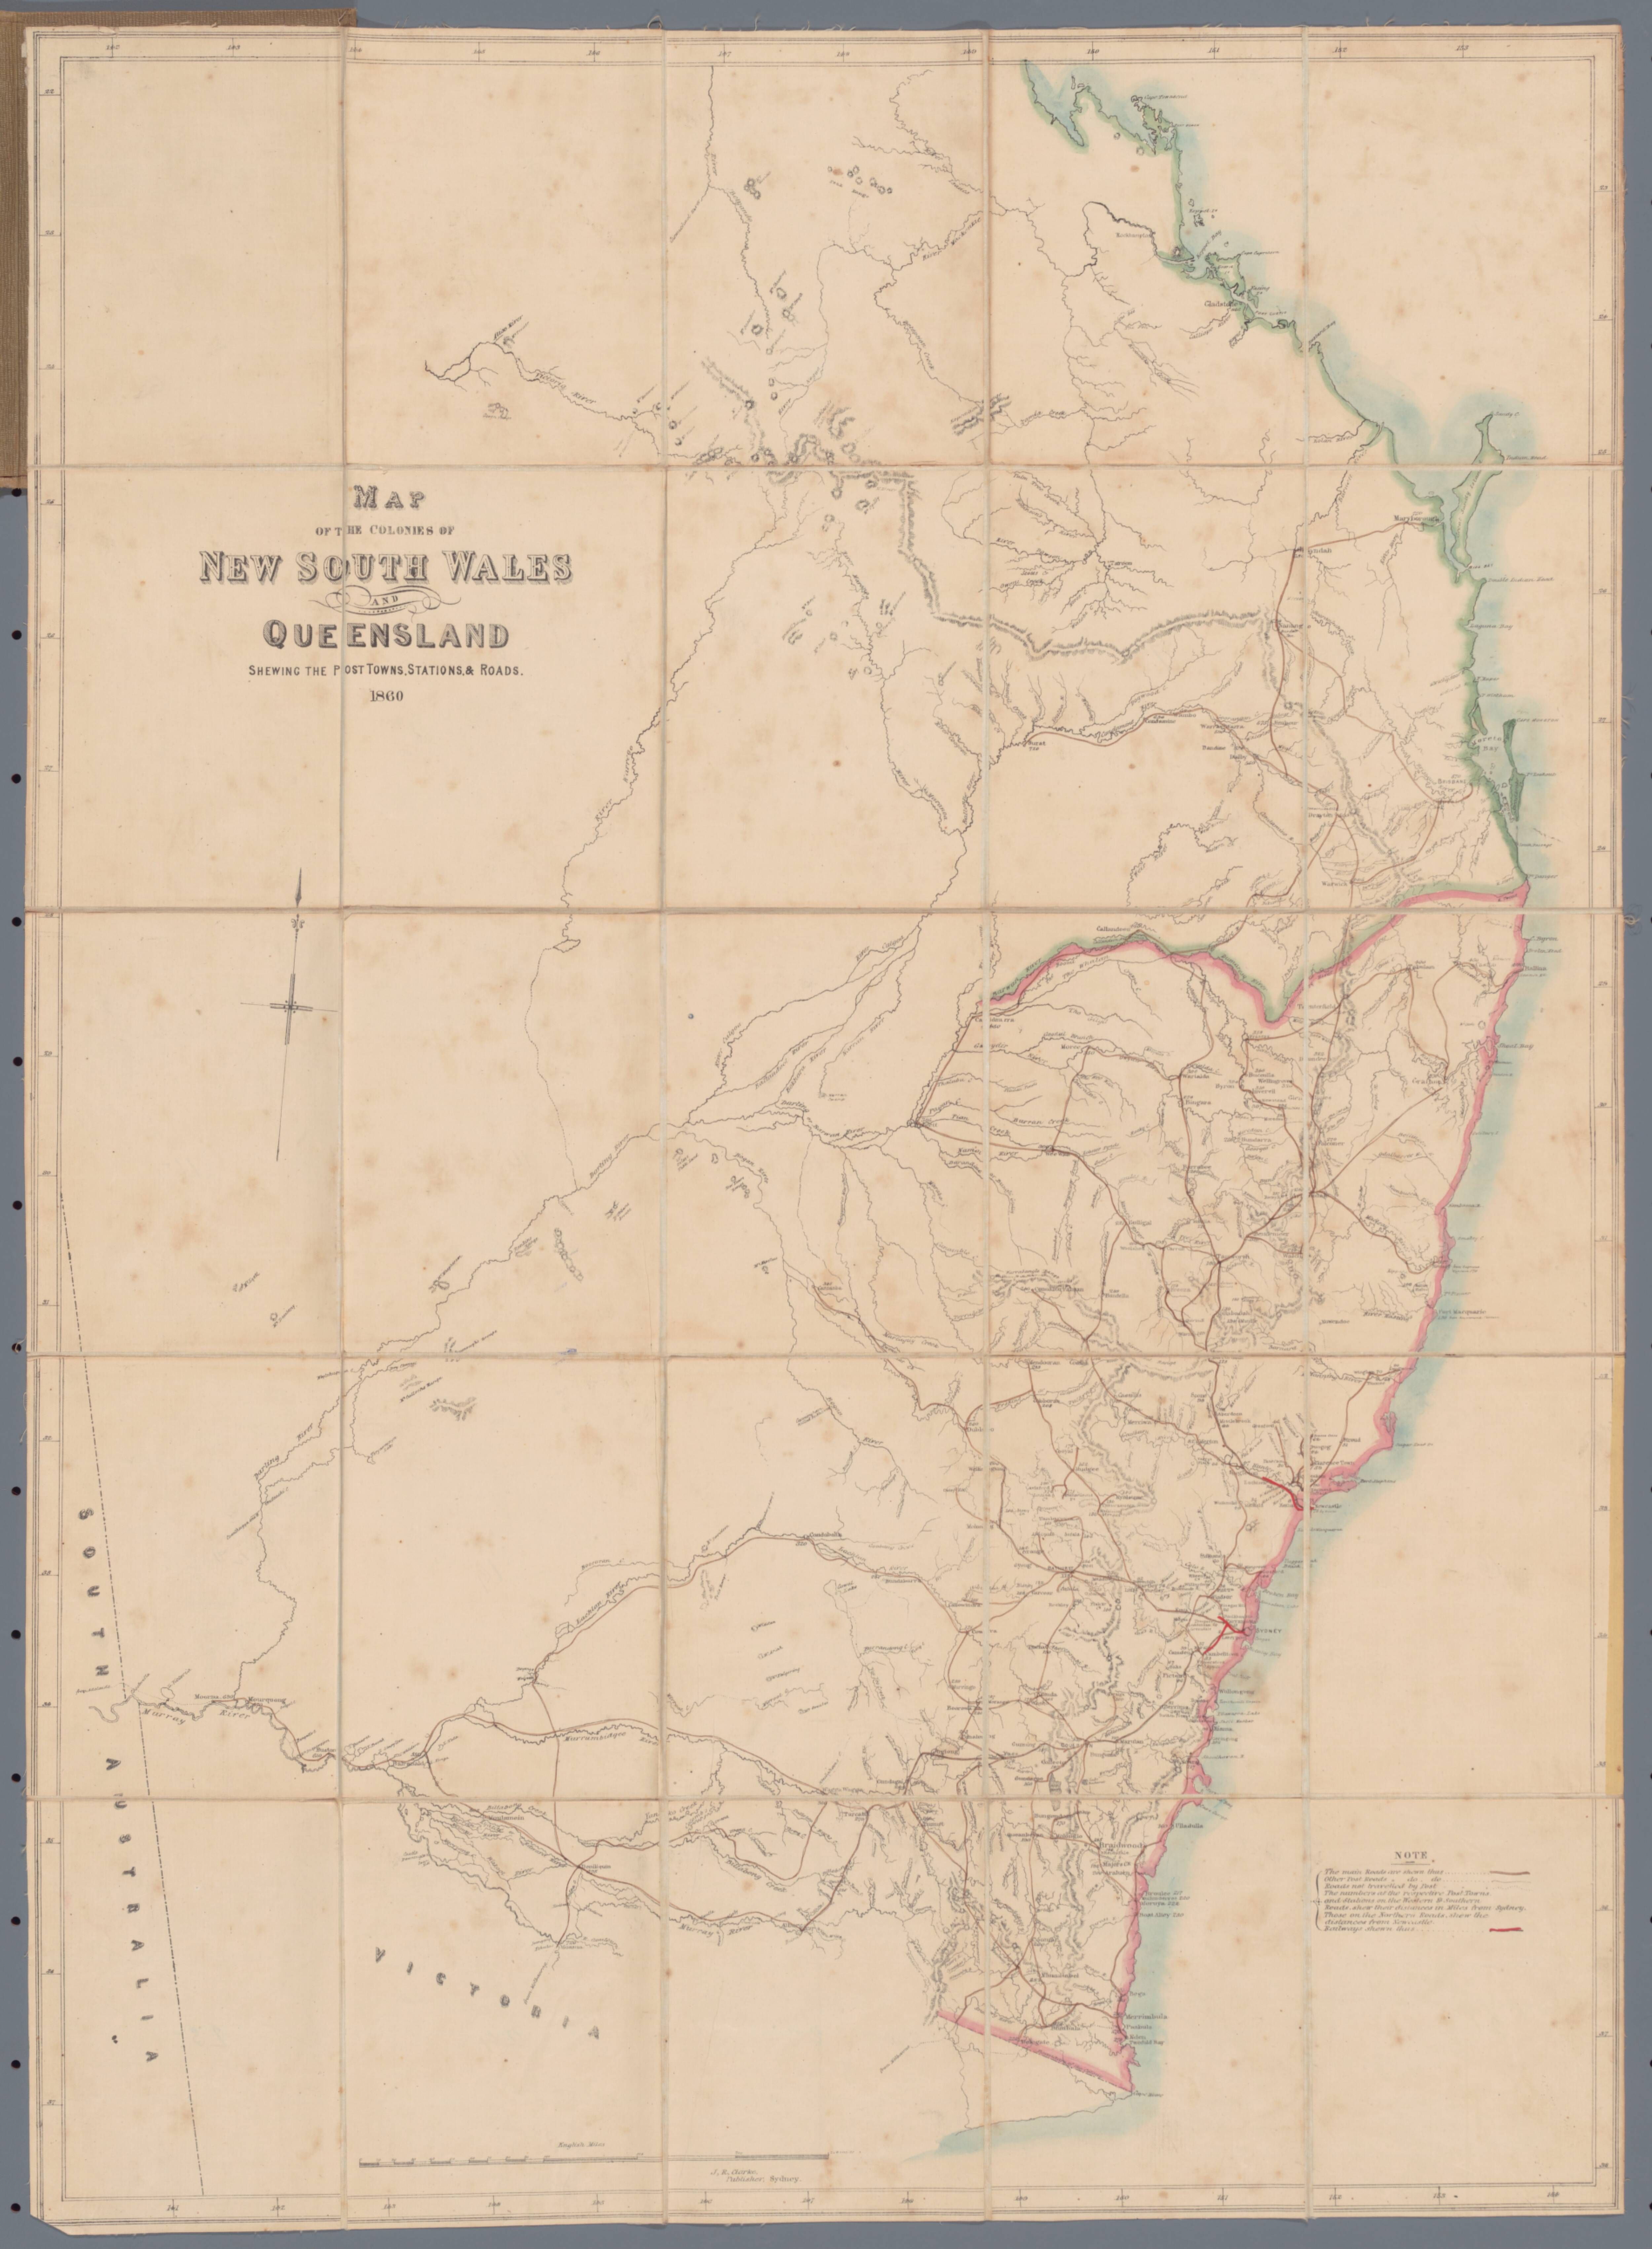 Nsw Map Australia.1860 Map Of The Colonies Of Nsw And Queensland Map Australia